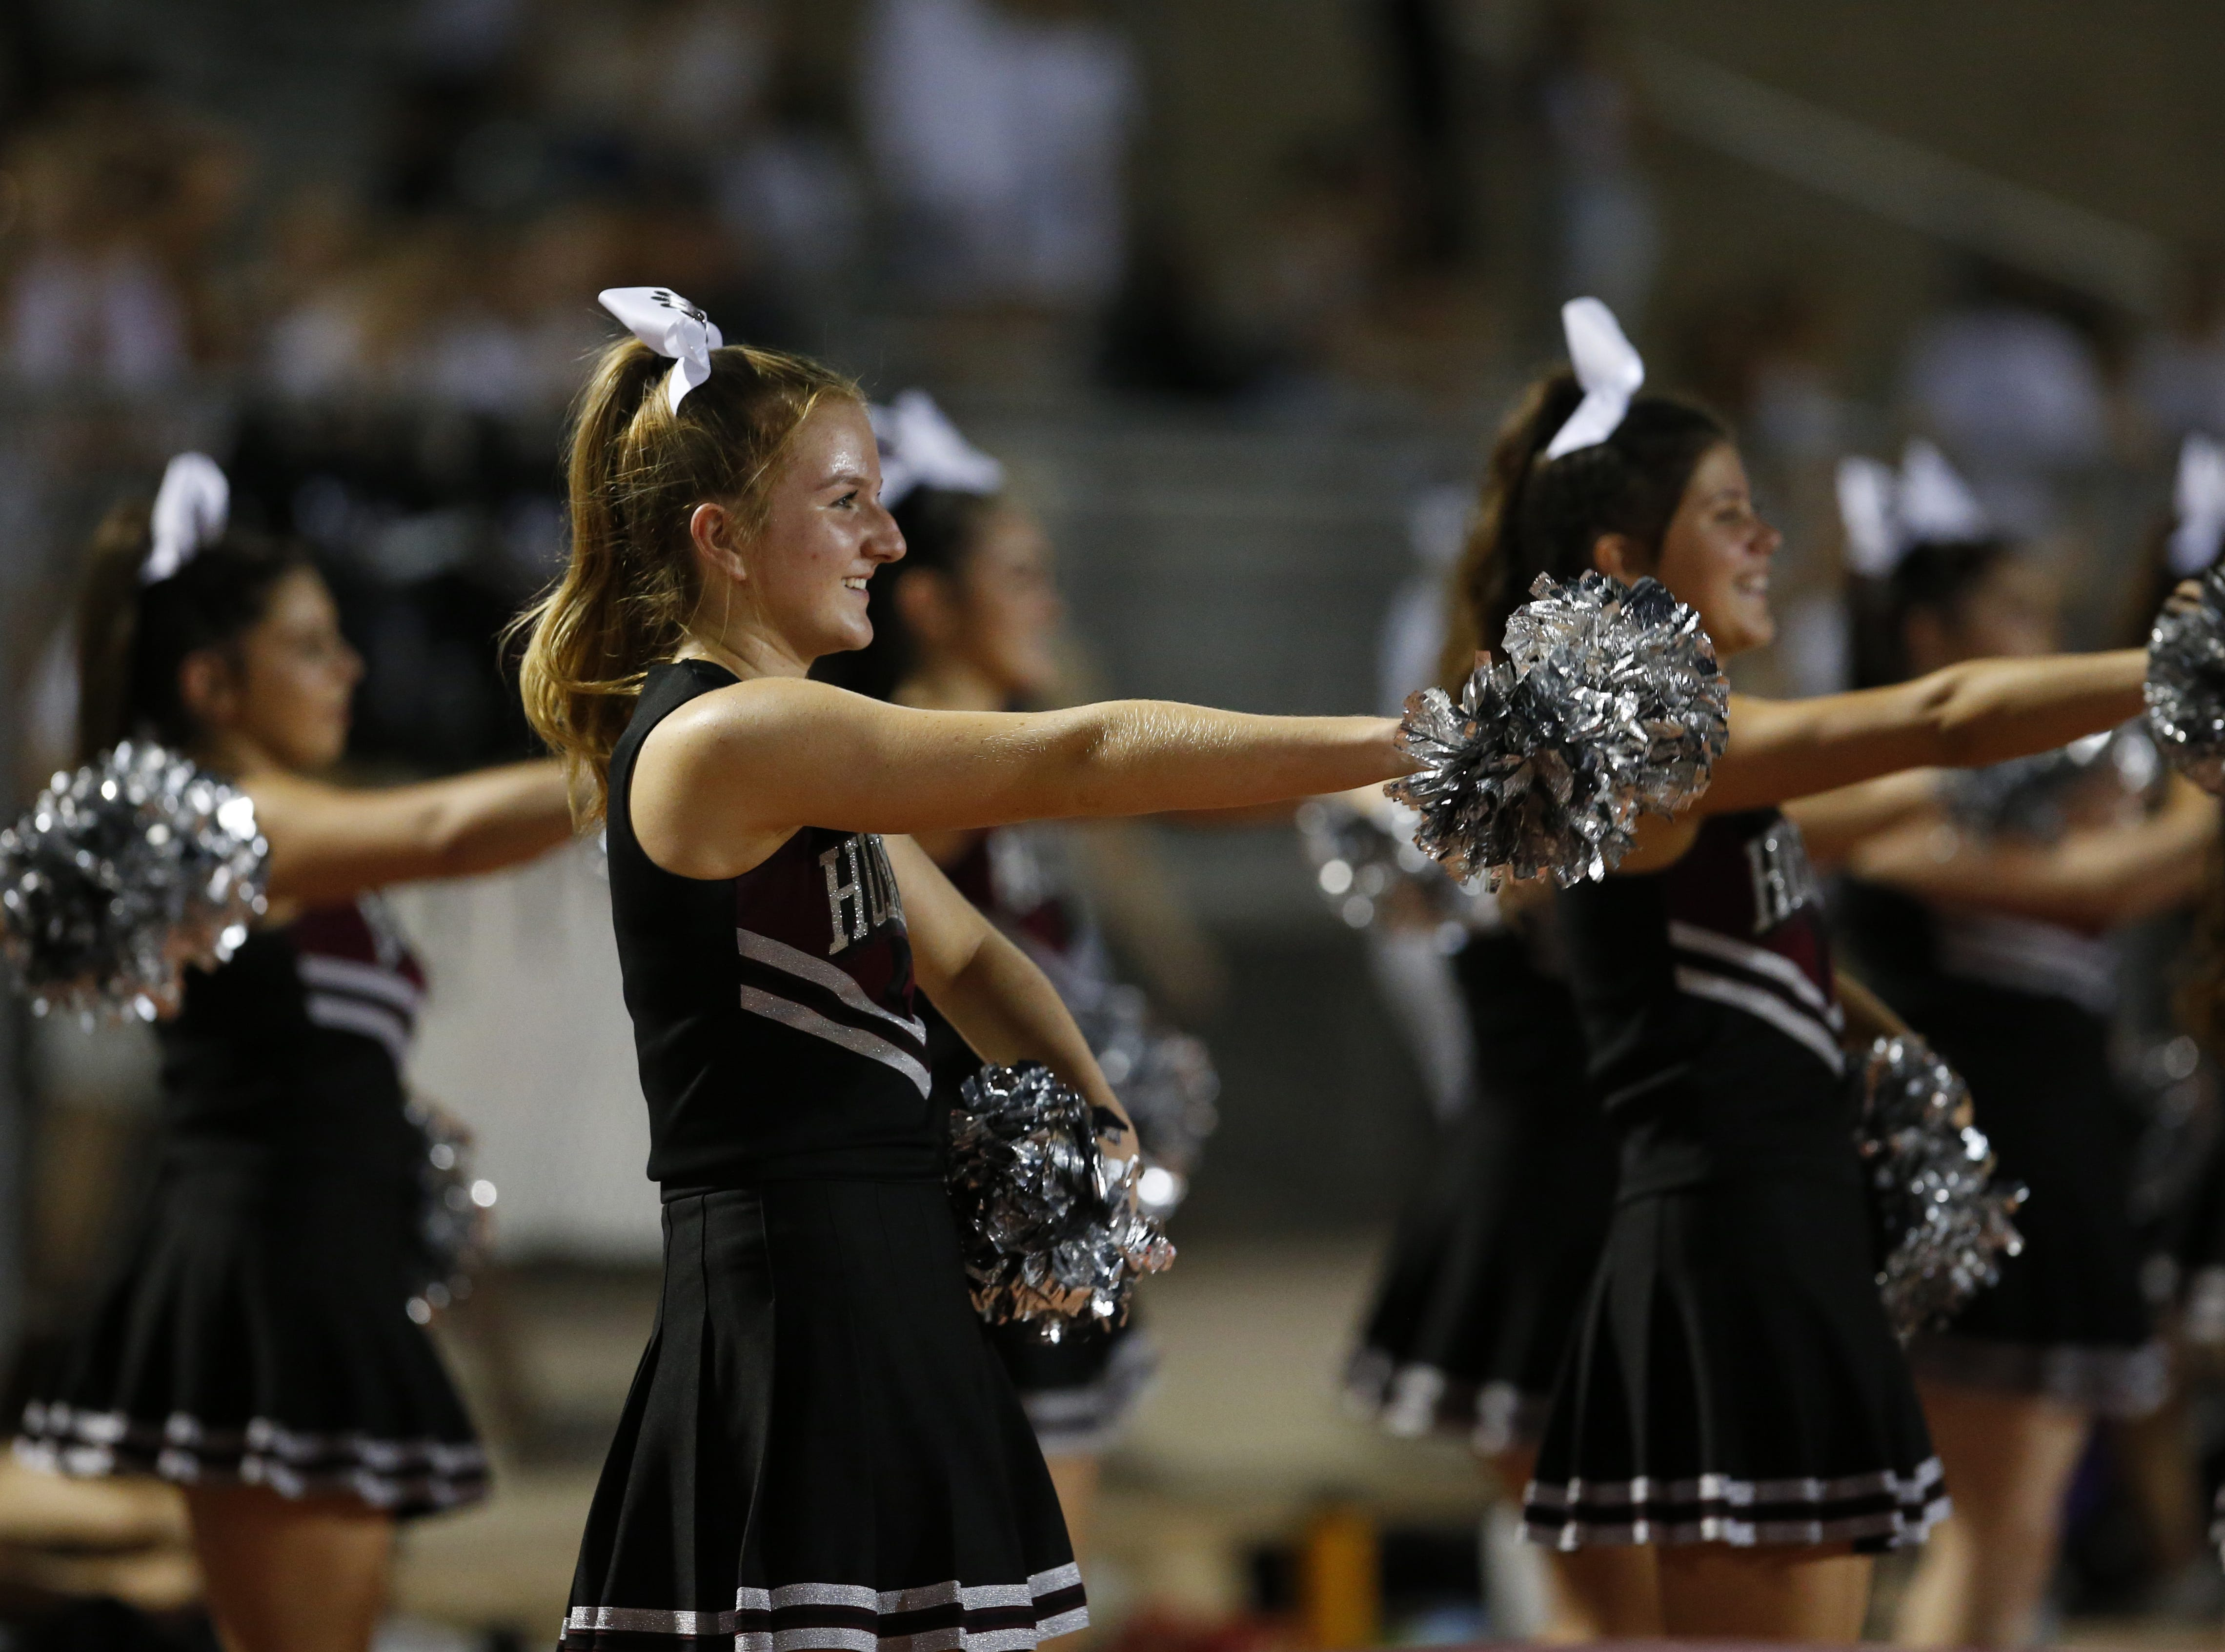 Hamilton 's cheer performs during a high school football game against Chaparral at Hamilton in Chandler on August 17, 2018. #hsfb